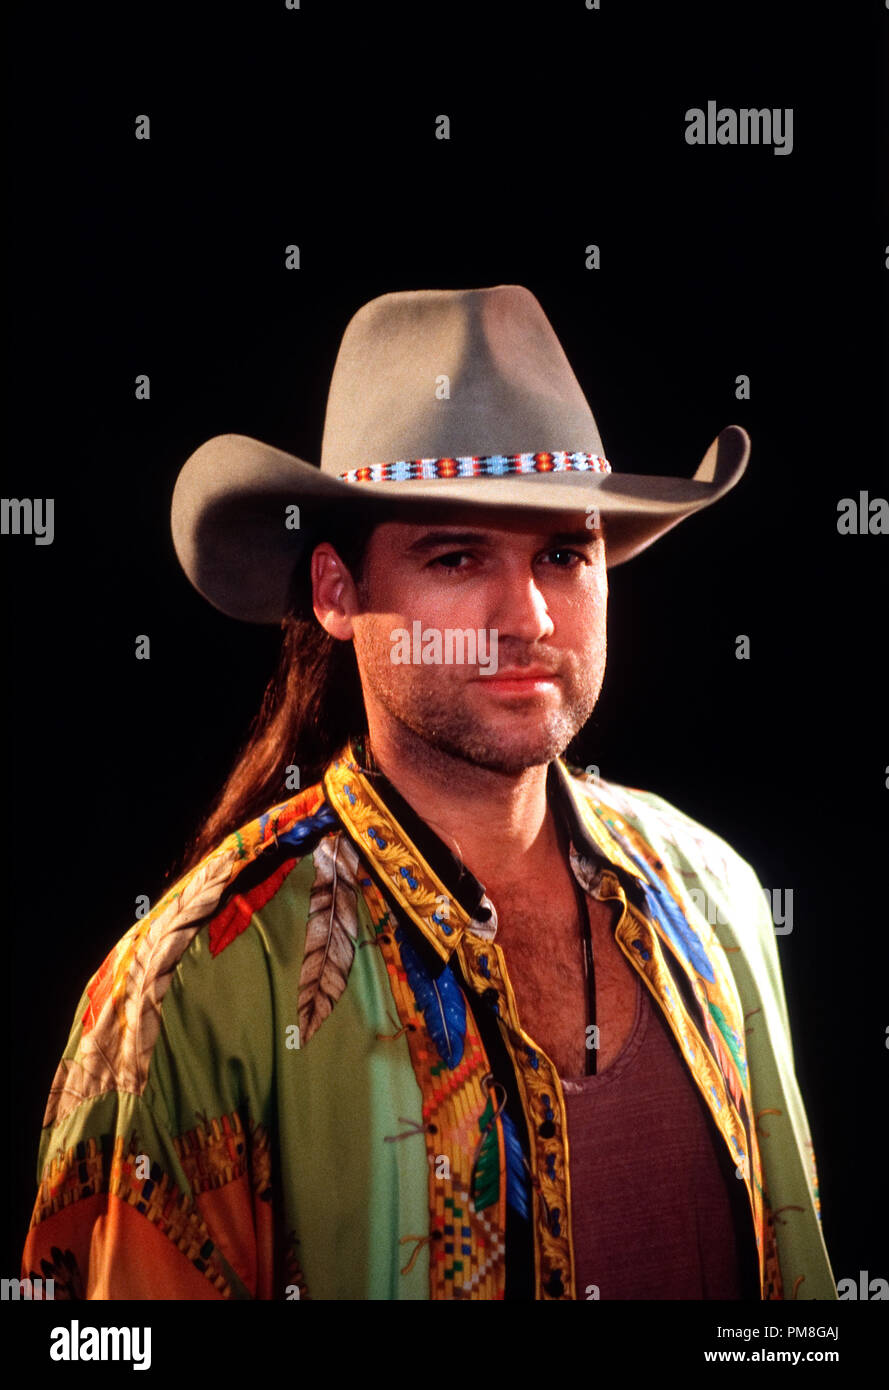 Film still / publicity still from 'Diagnosis Murder' Billy Ray Cyrus circa 1993 CBS   File Reference # 31371317THA  For Editorial Use Only All Rights Reserved - Stock Image